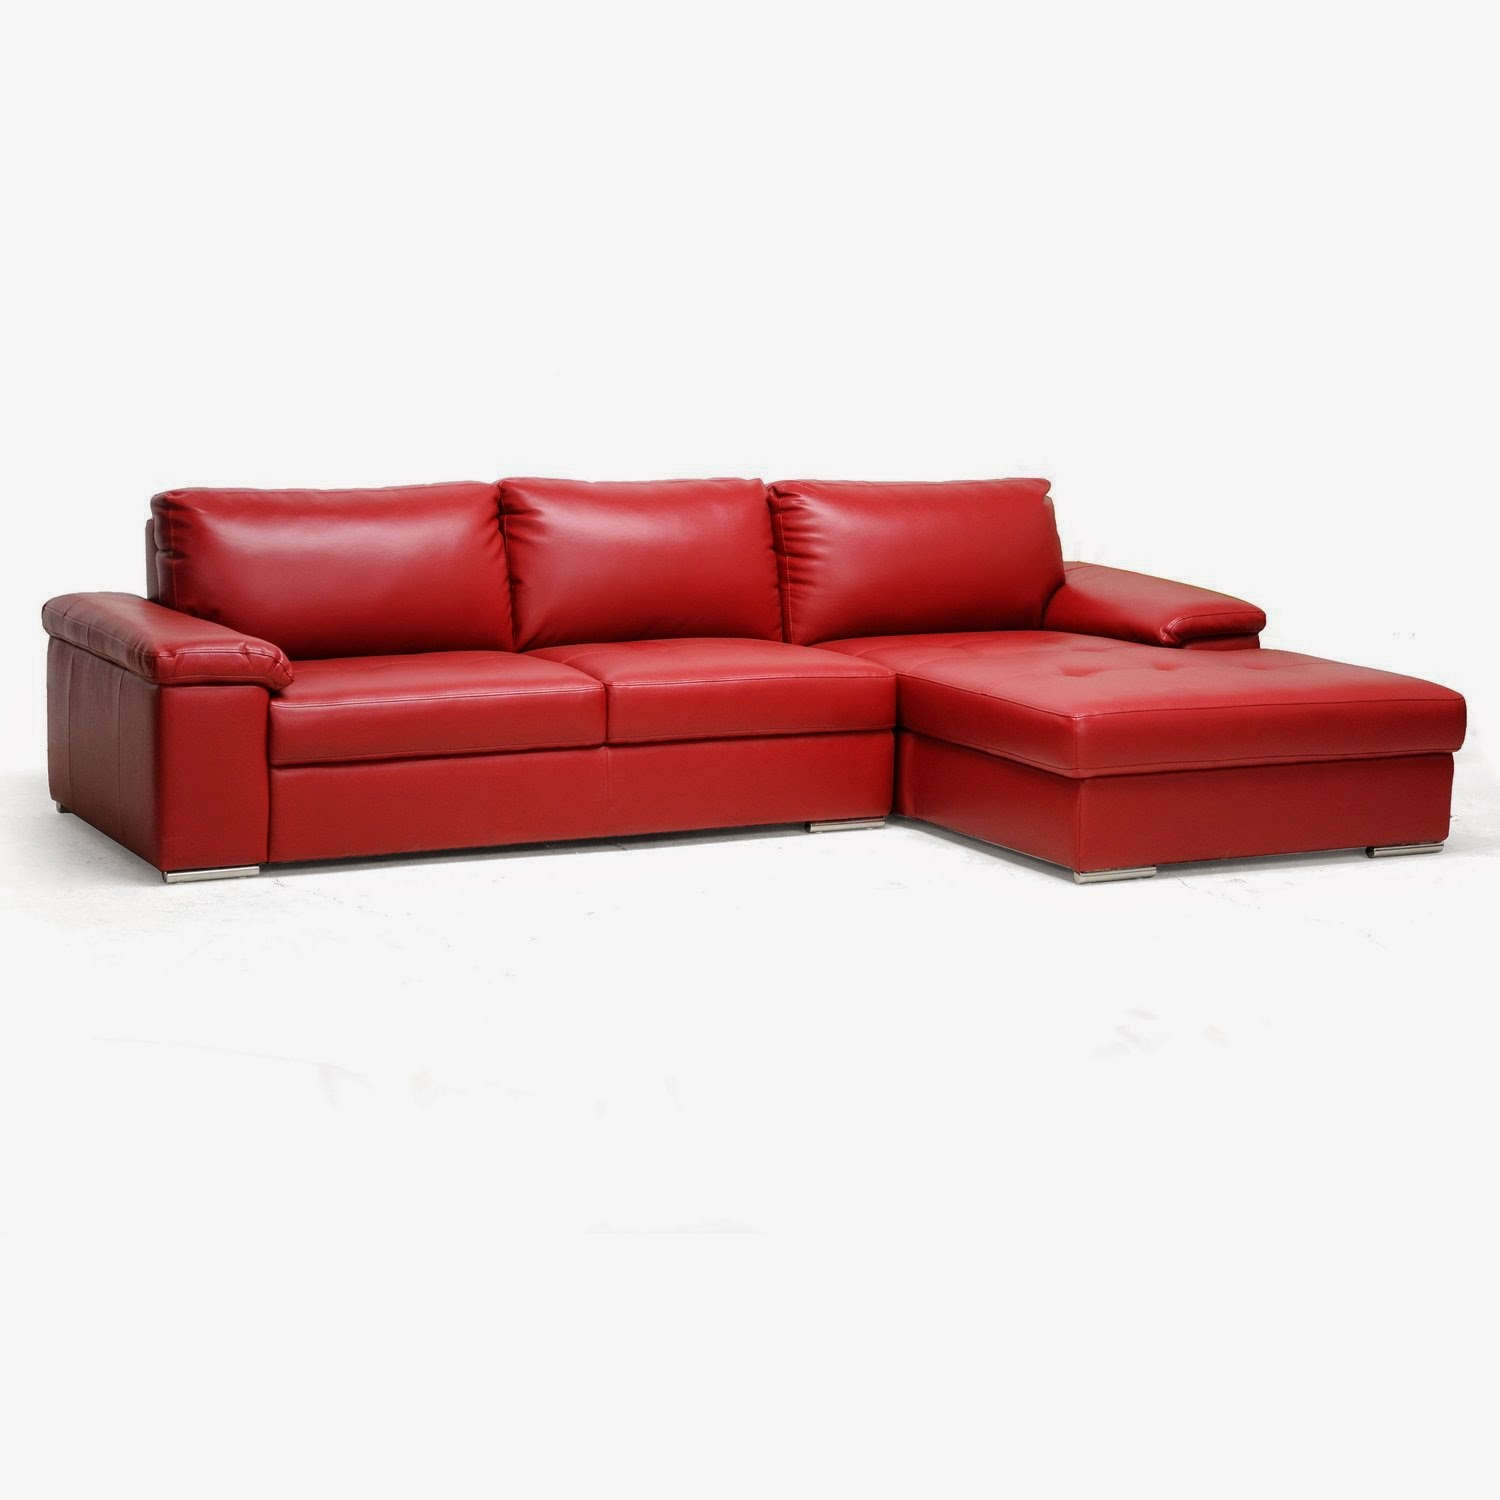 Couch Rot Red Couch Red Leather Sectional Couch